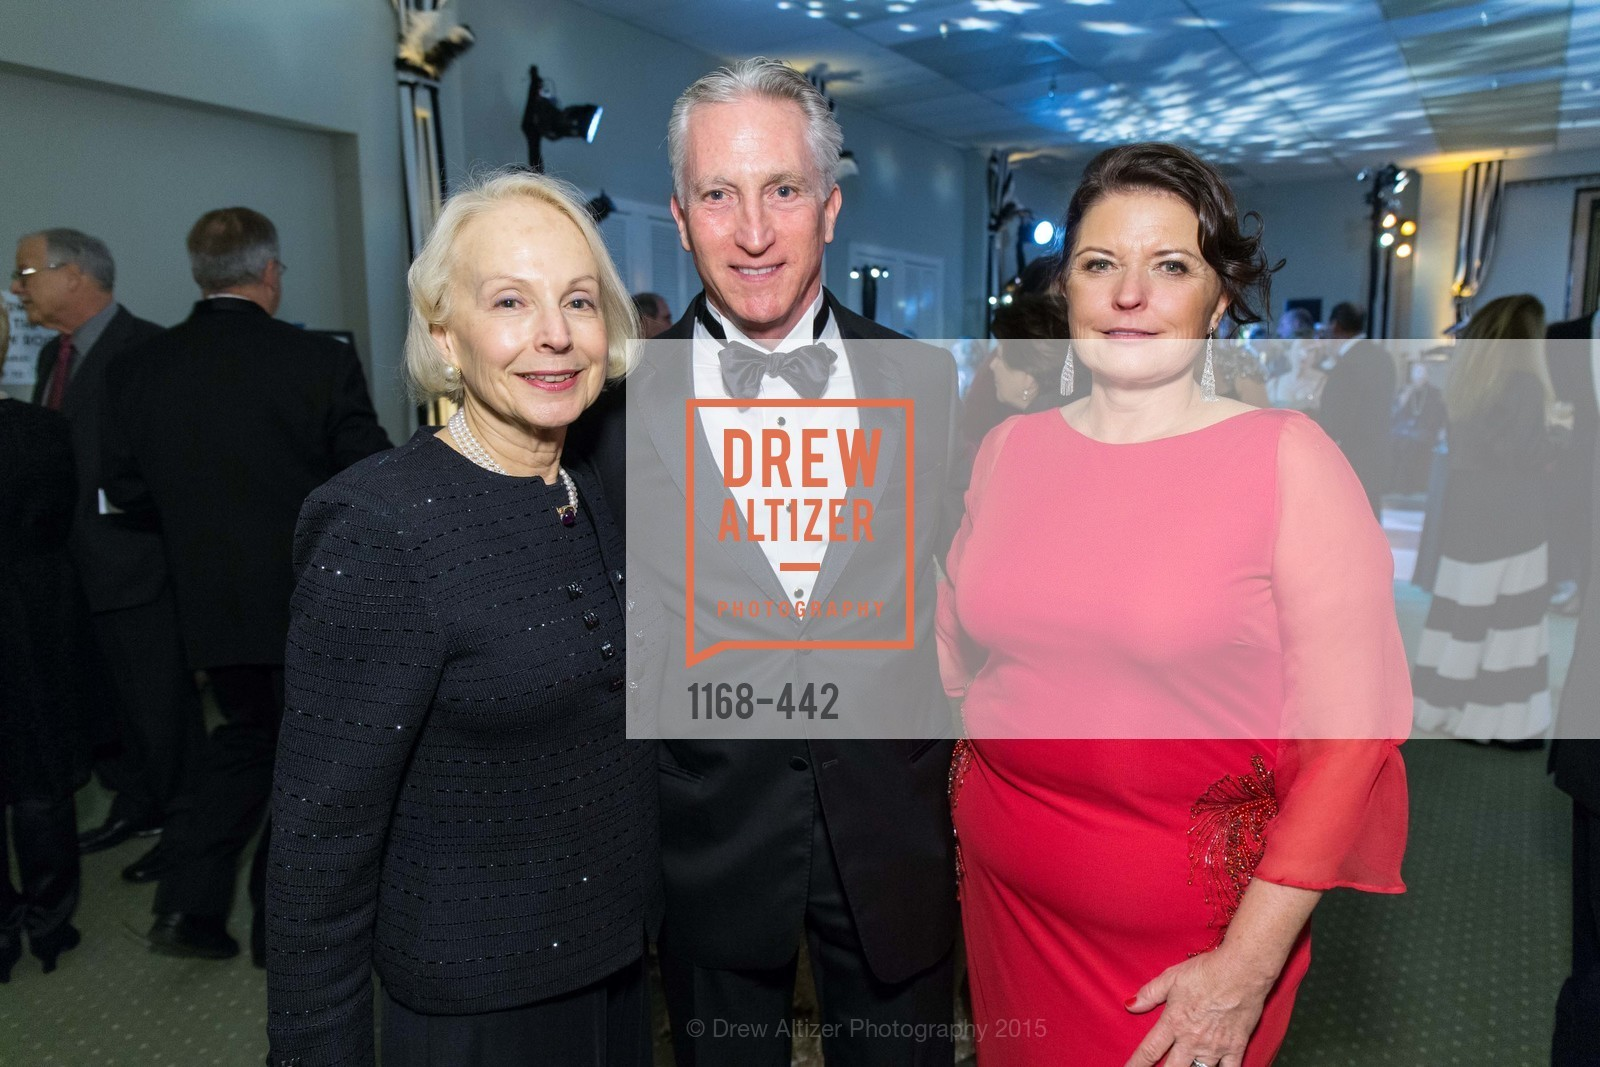 Sharon Litsky, Robert Eldred, Elizabeth Folger, Metropolitan Club Presents THE CENTENNIAL GALA, Metropolitan Club. 640 Sutter Street, November 5th, 2015,Drew Altizer, Drew Altizer Photography, full-service event agency, private events, San Francisco photographer, photographer California